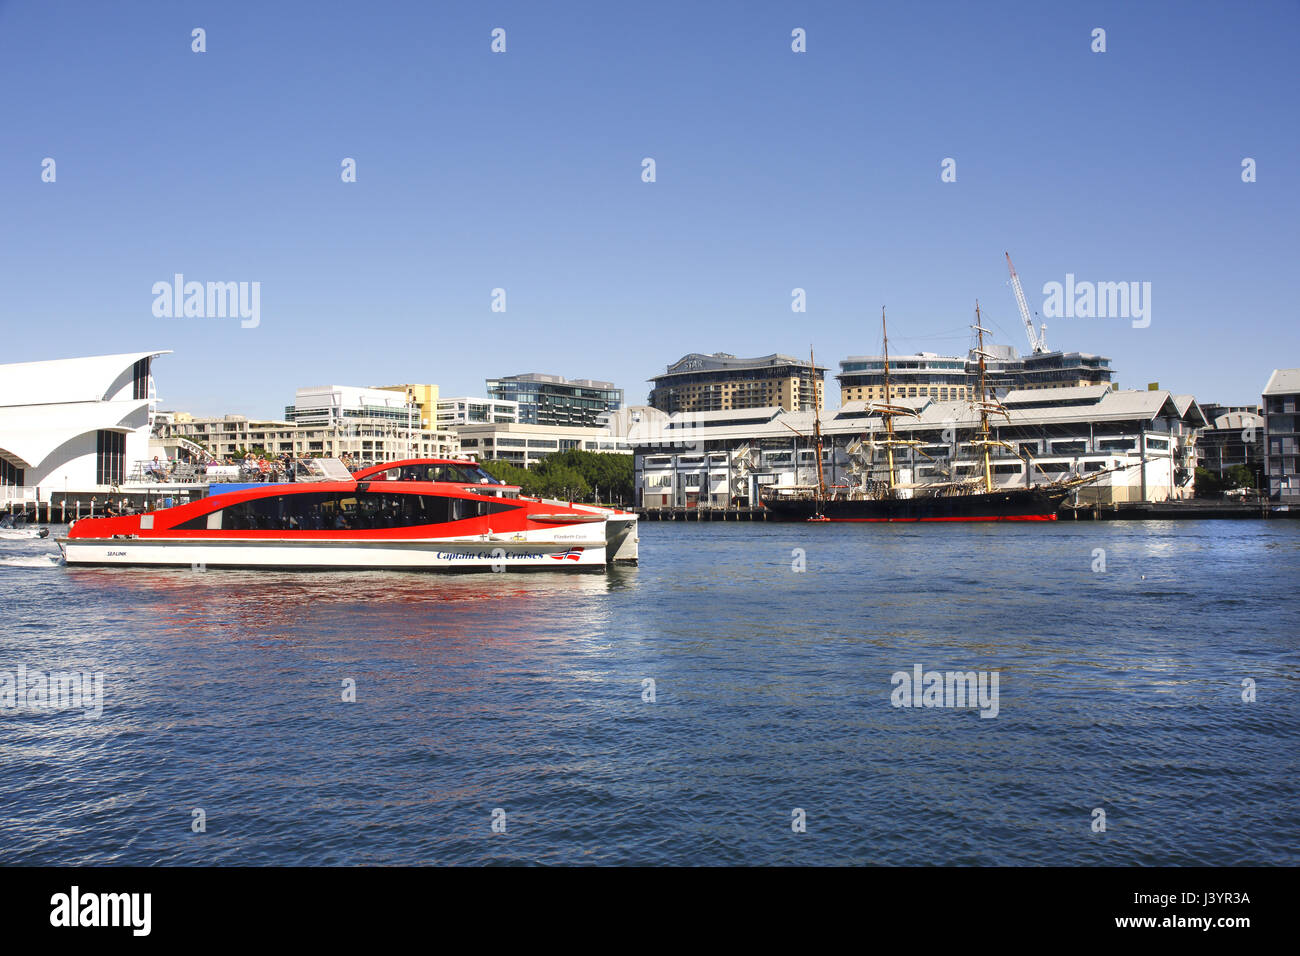 A 'Captain Cook Cruises' catermaran passing a tall ship as it leaves Darling Harbour, Sydney, Australia - Stock Image